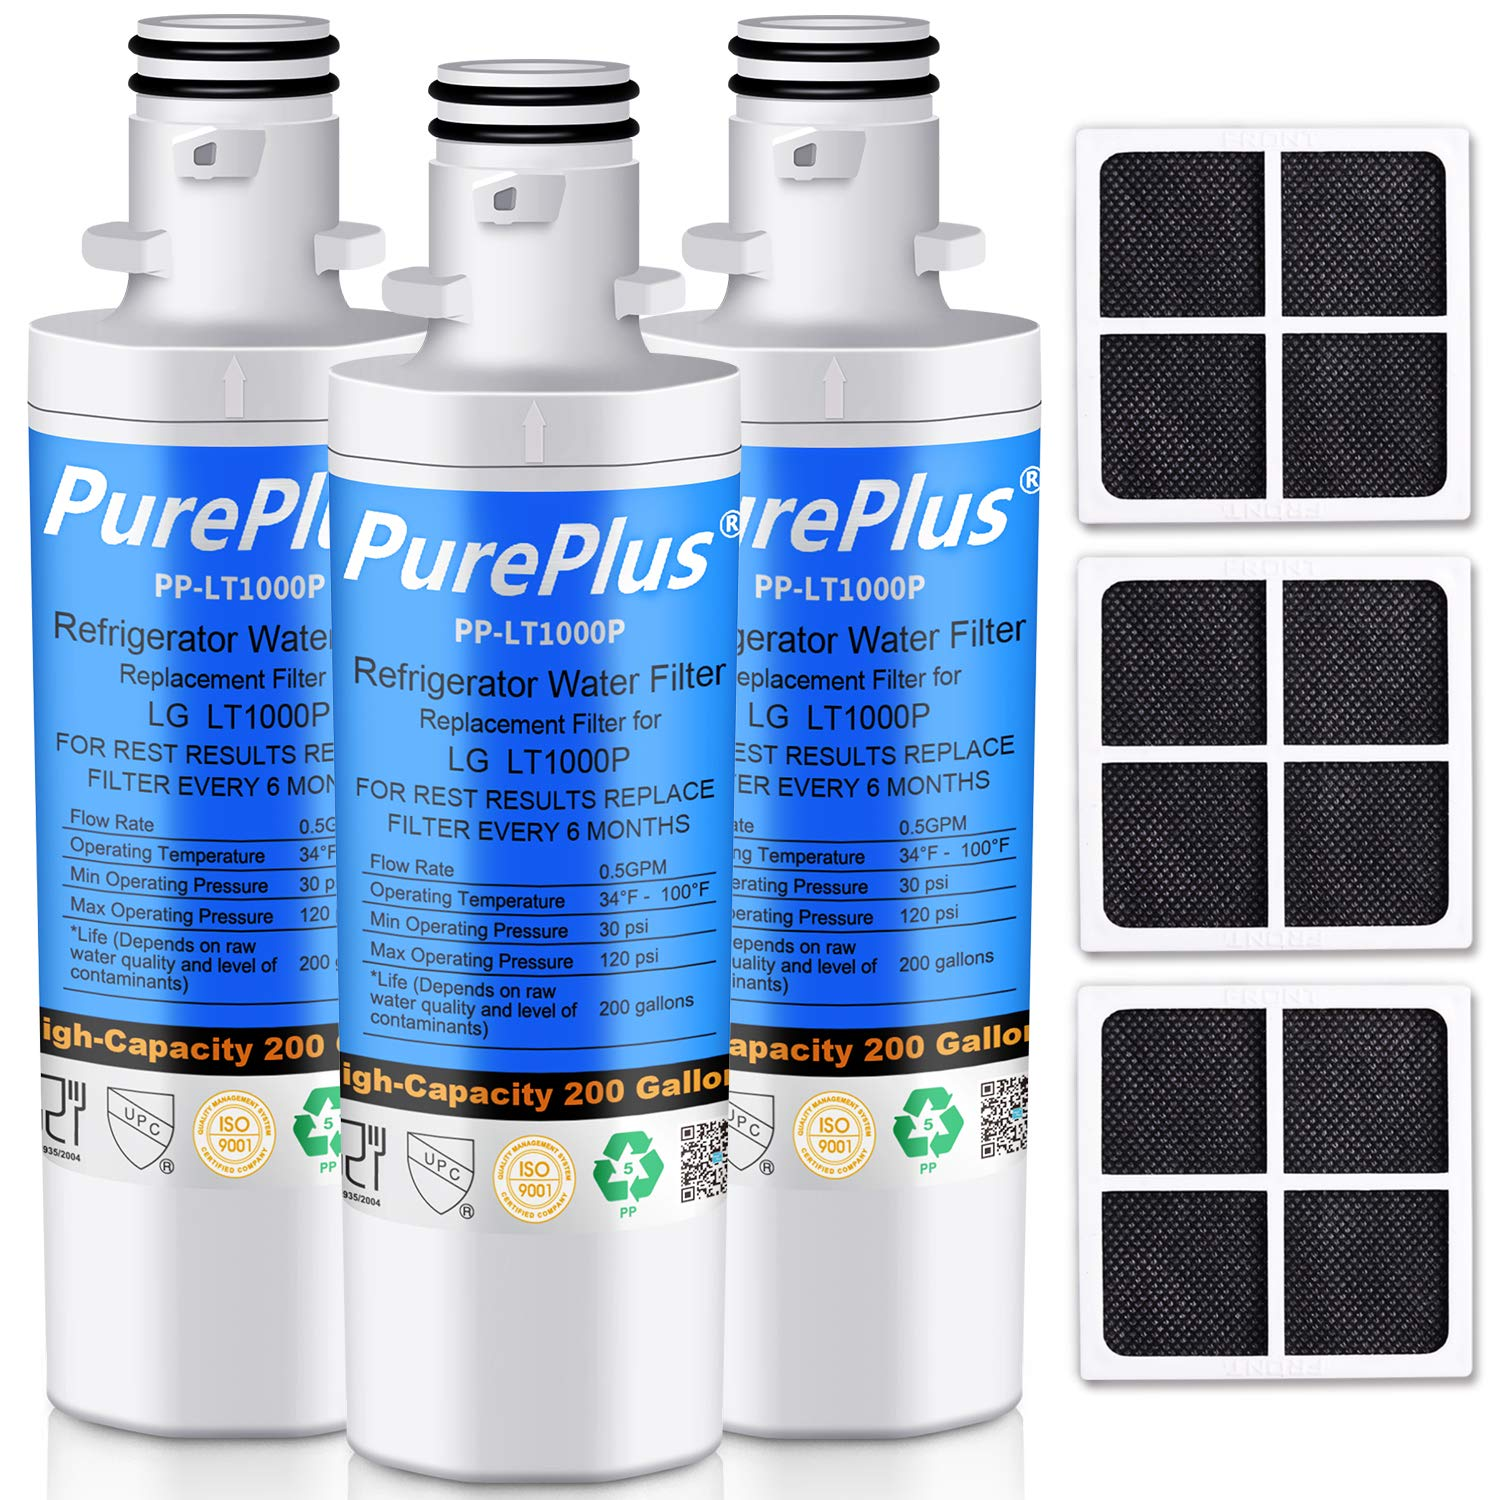 PUREPLUS MDJ64844601 Refrigerator Water Filter, Compatible with LG LT1000P, LT1000, LT1000PC, 9980, ADQ747935, ADQ74793501, ADQ74793502, LMXS30796S, LMXC23796S and LG LT120F Air Filter Combo, 3-Pack